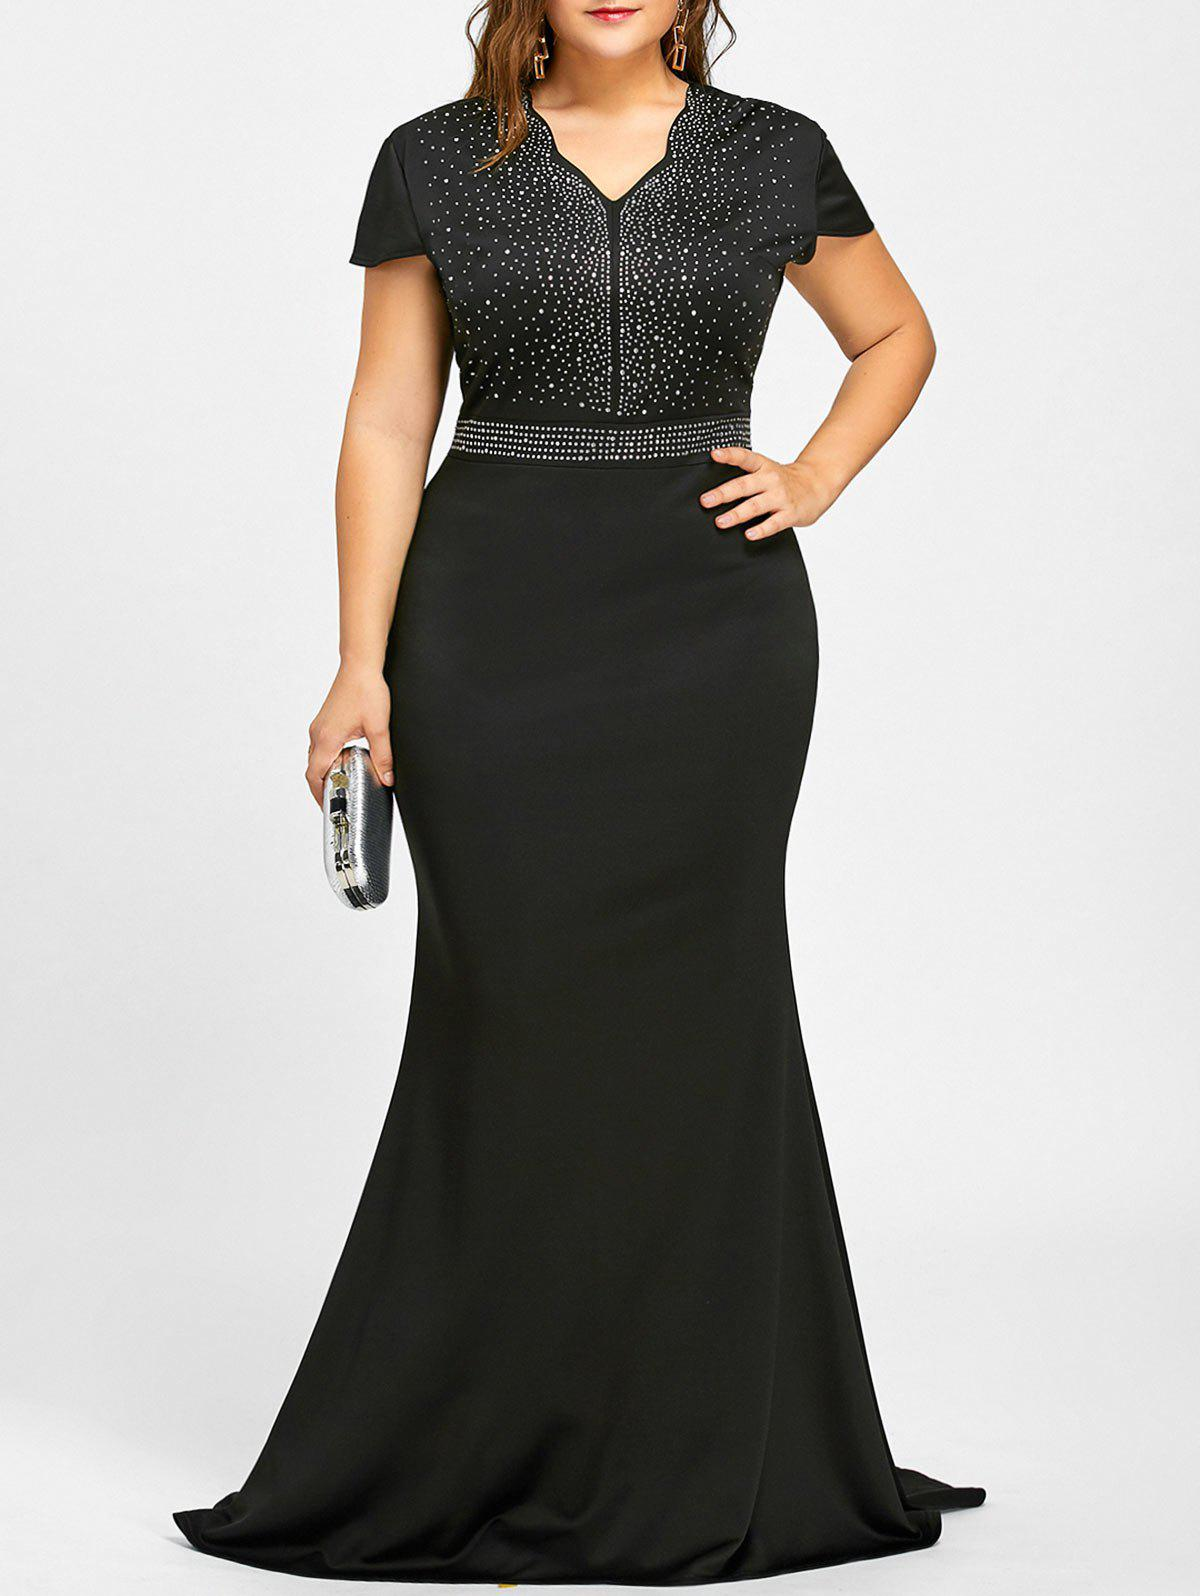 Rhinestone Embellished Plus Size Maxi Dress - BLACK 2XL